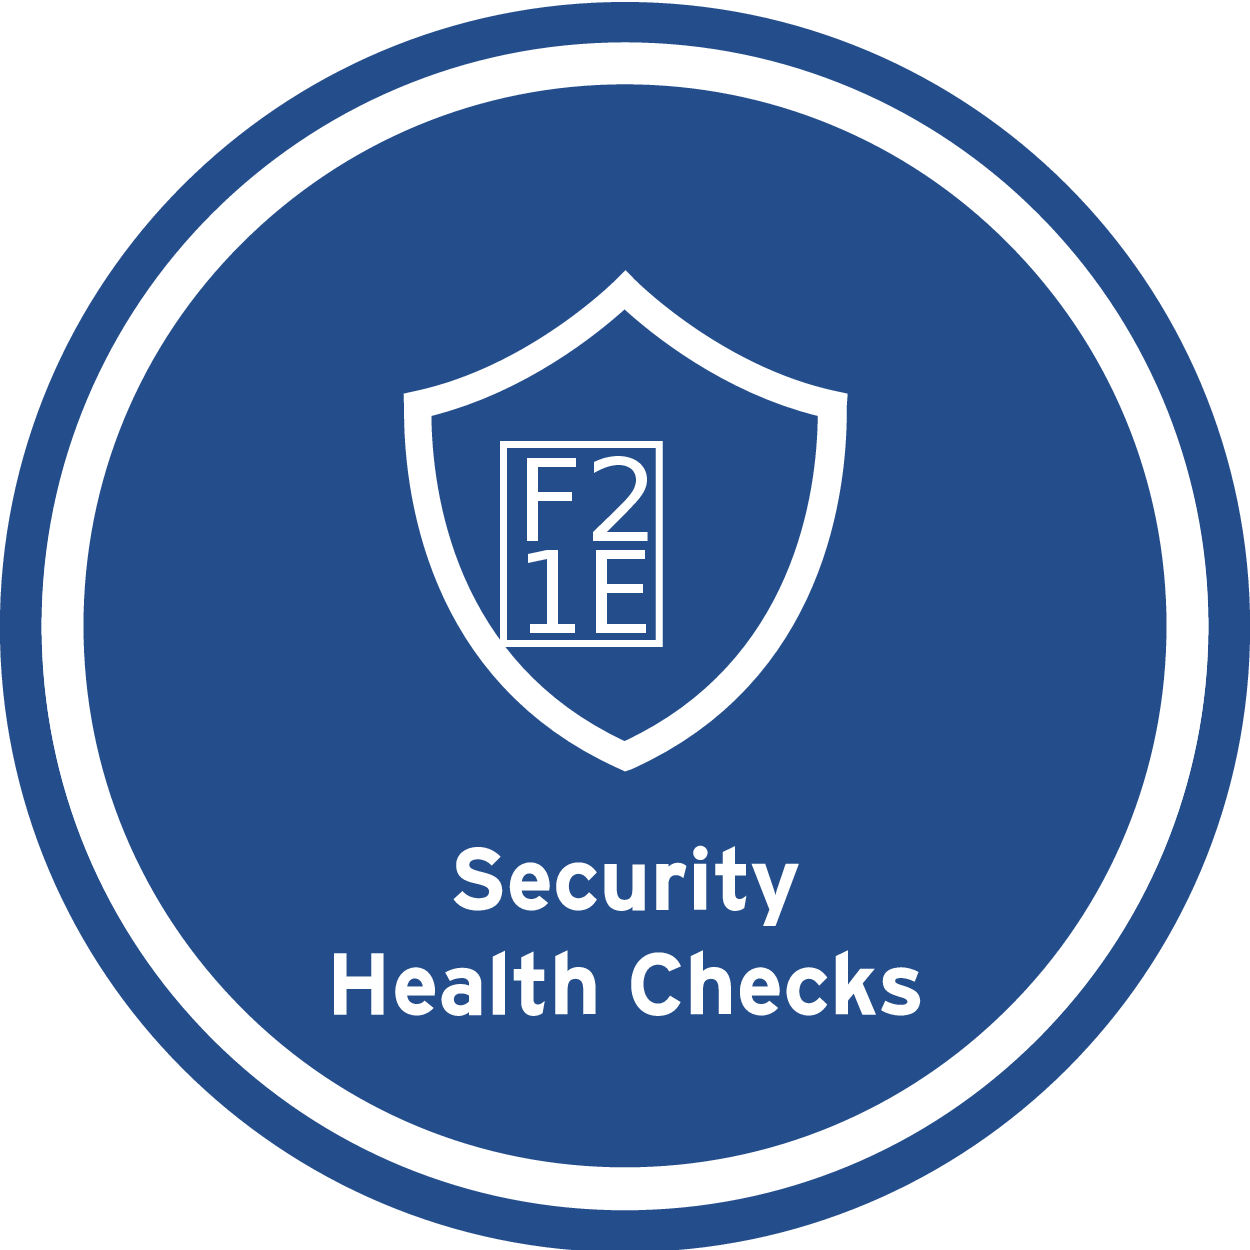 Security Solution Health Checks